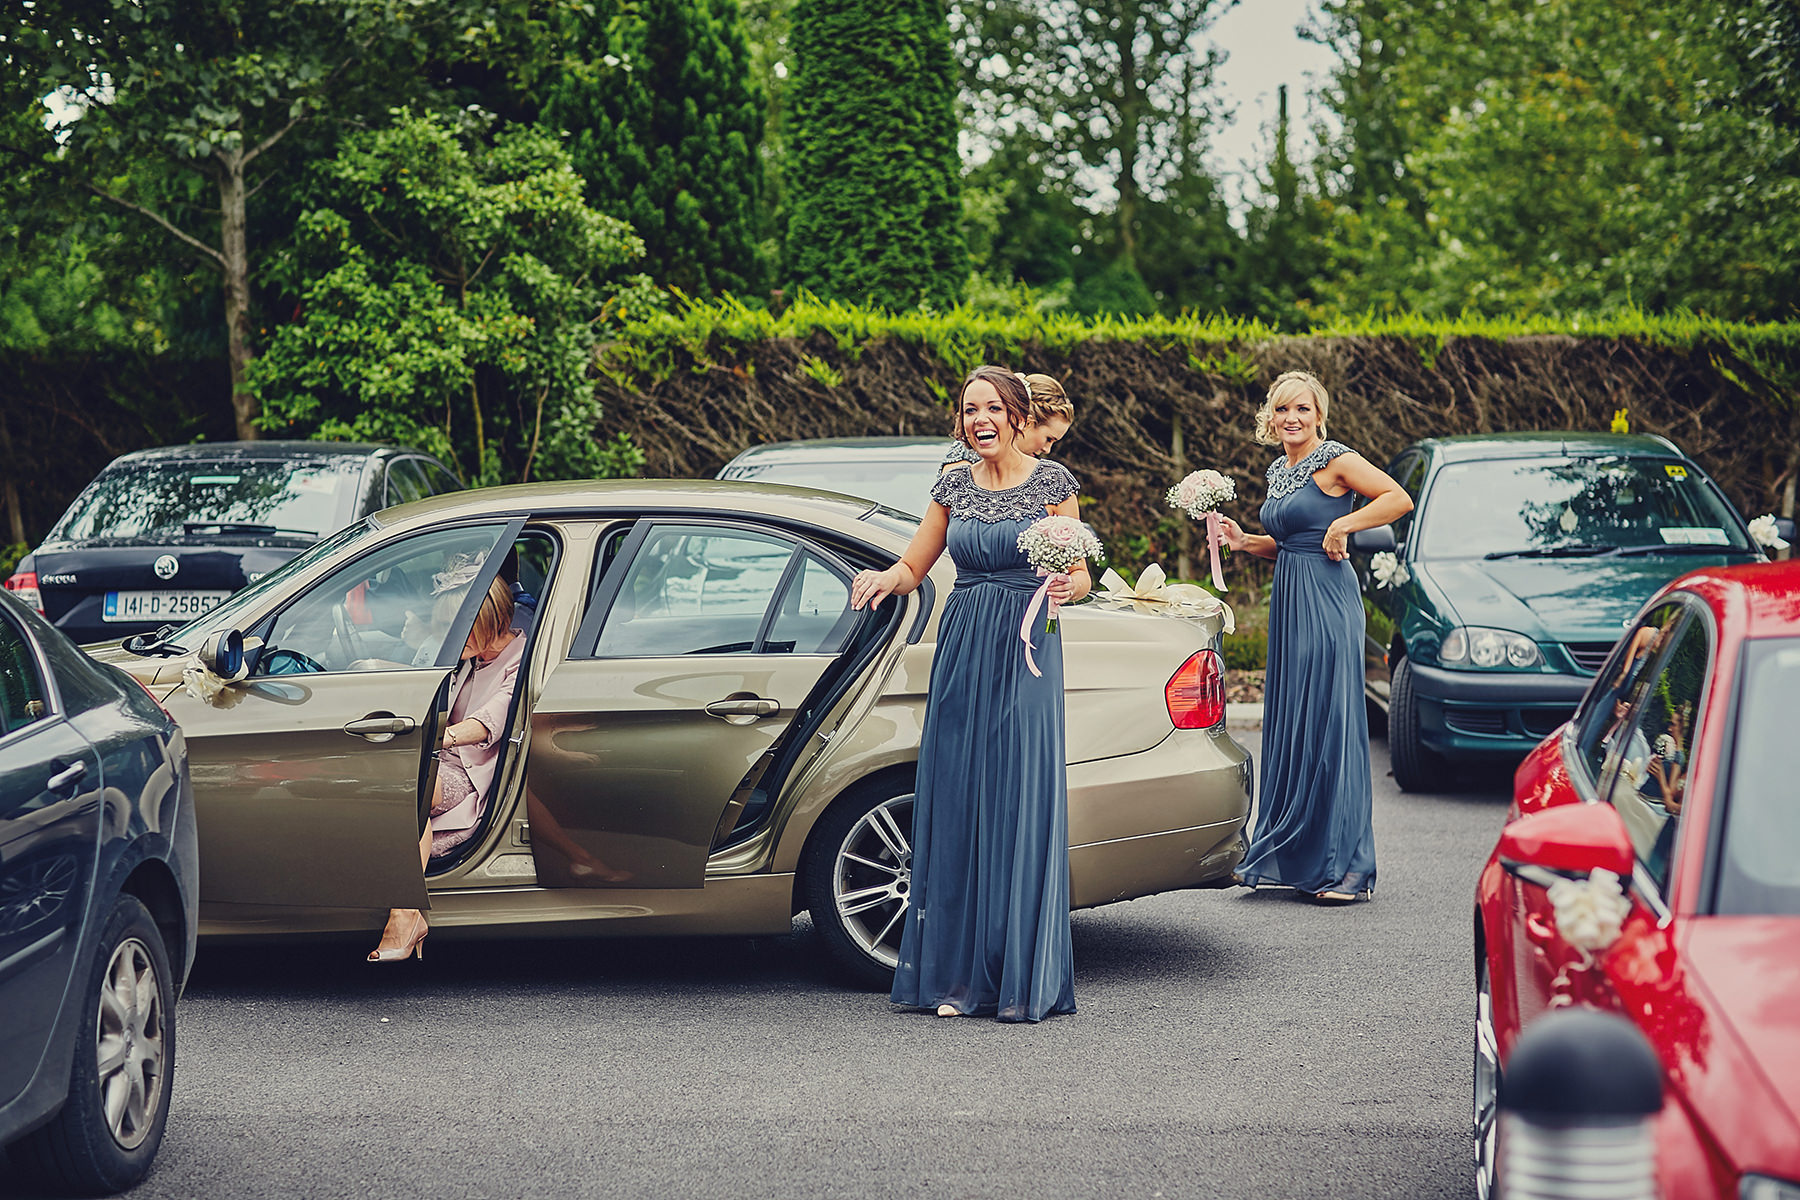 Wedding at The Keadeen Hotel Newbridge023 - Tara & Gearoid |Wedding at The Keadeen Hotel Newbridge